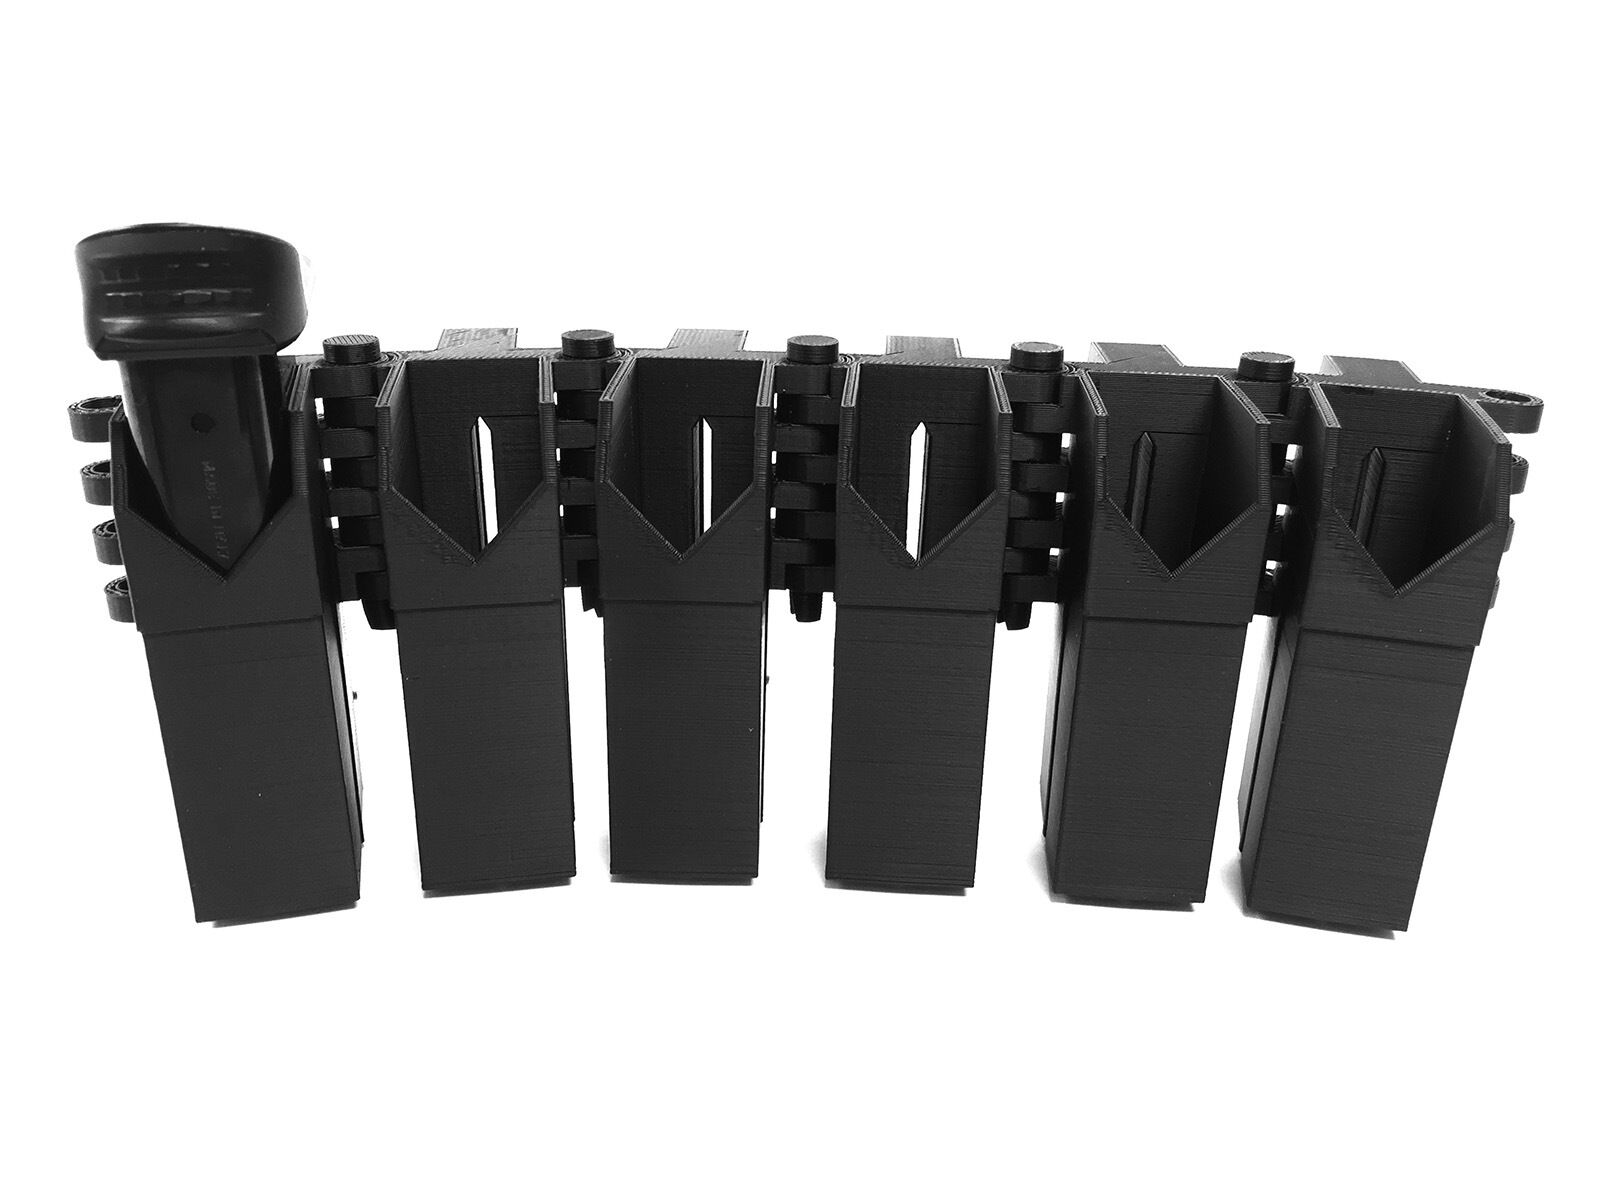 EAMP Patriot - Walther P99 9mm Six Magazine Pouch - MagP0049-F